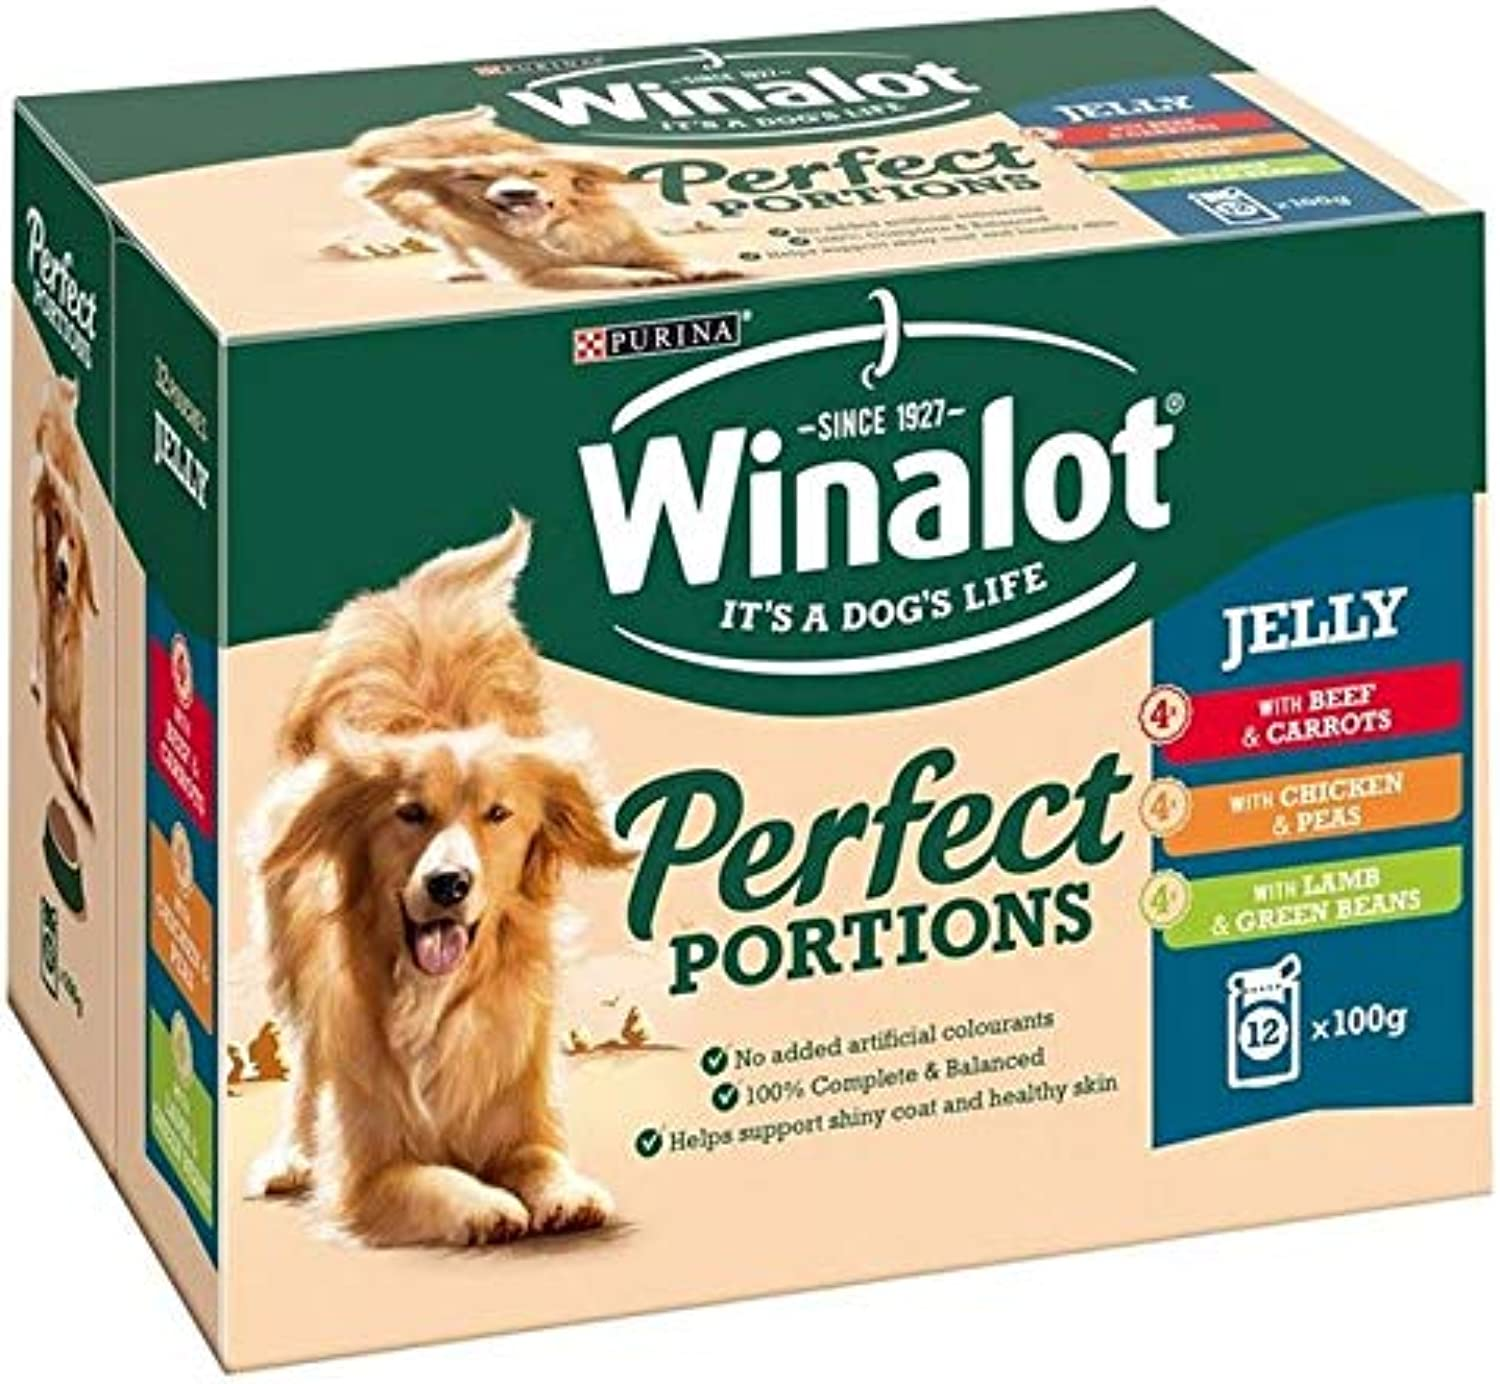 4X Winalot Perfect Portions Meat in Jelly 12 x 100g